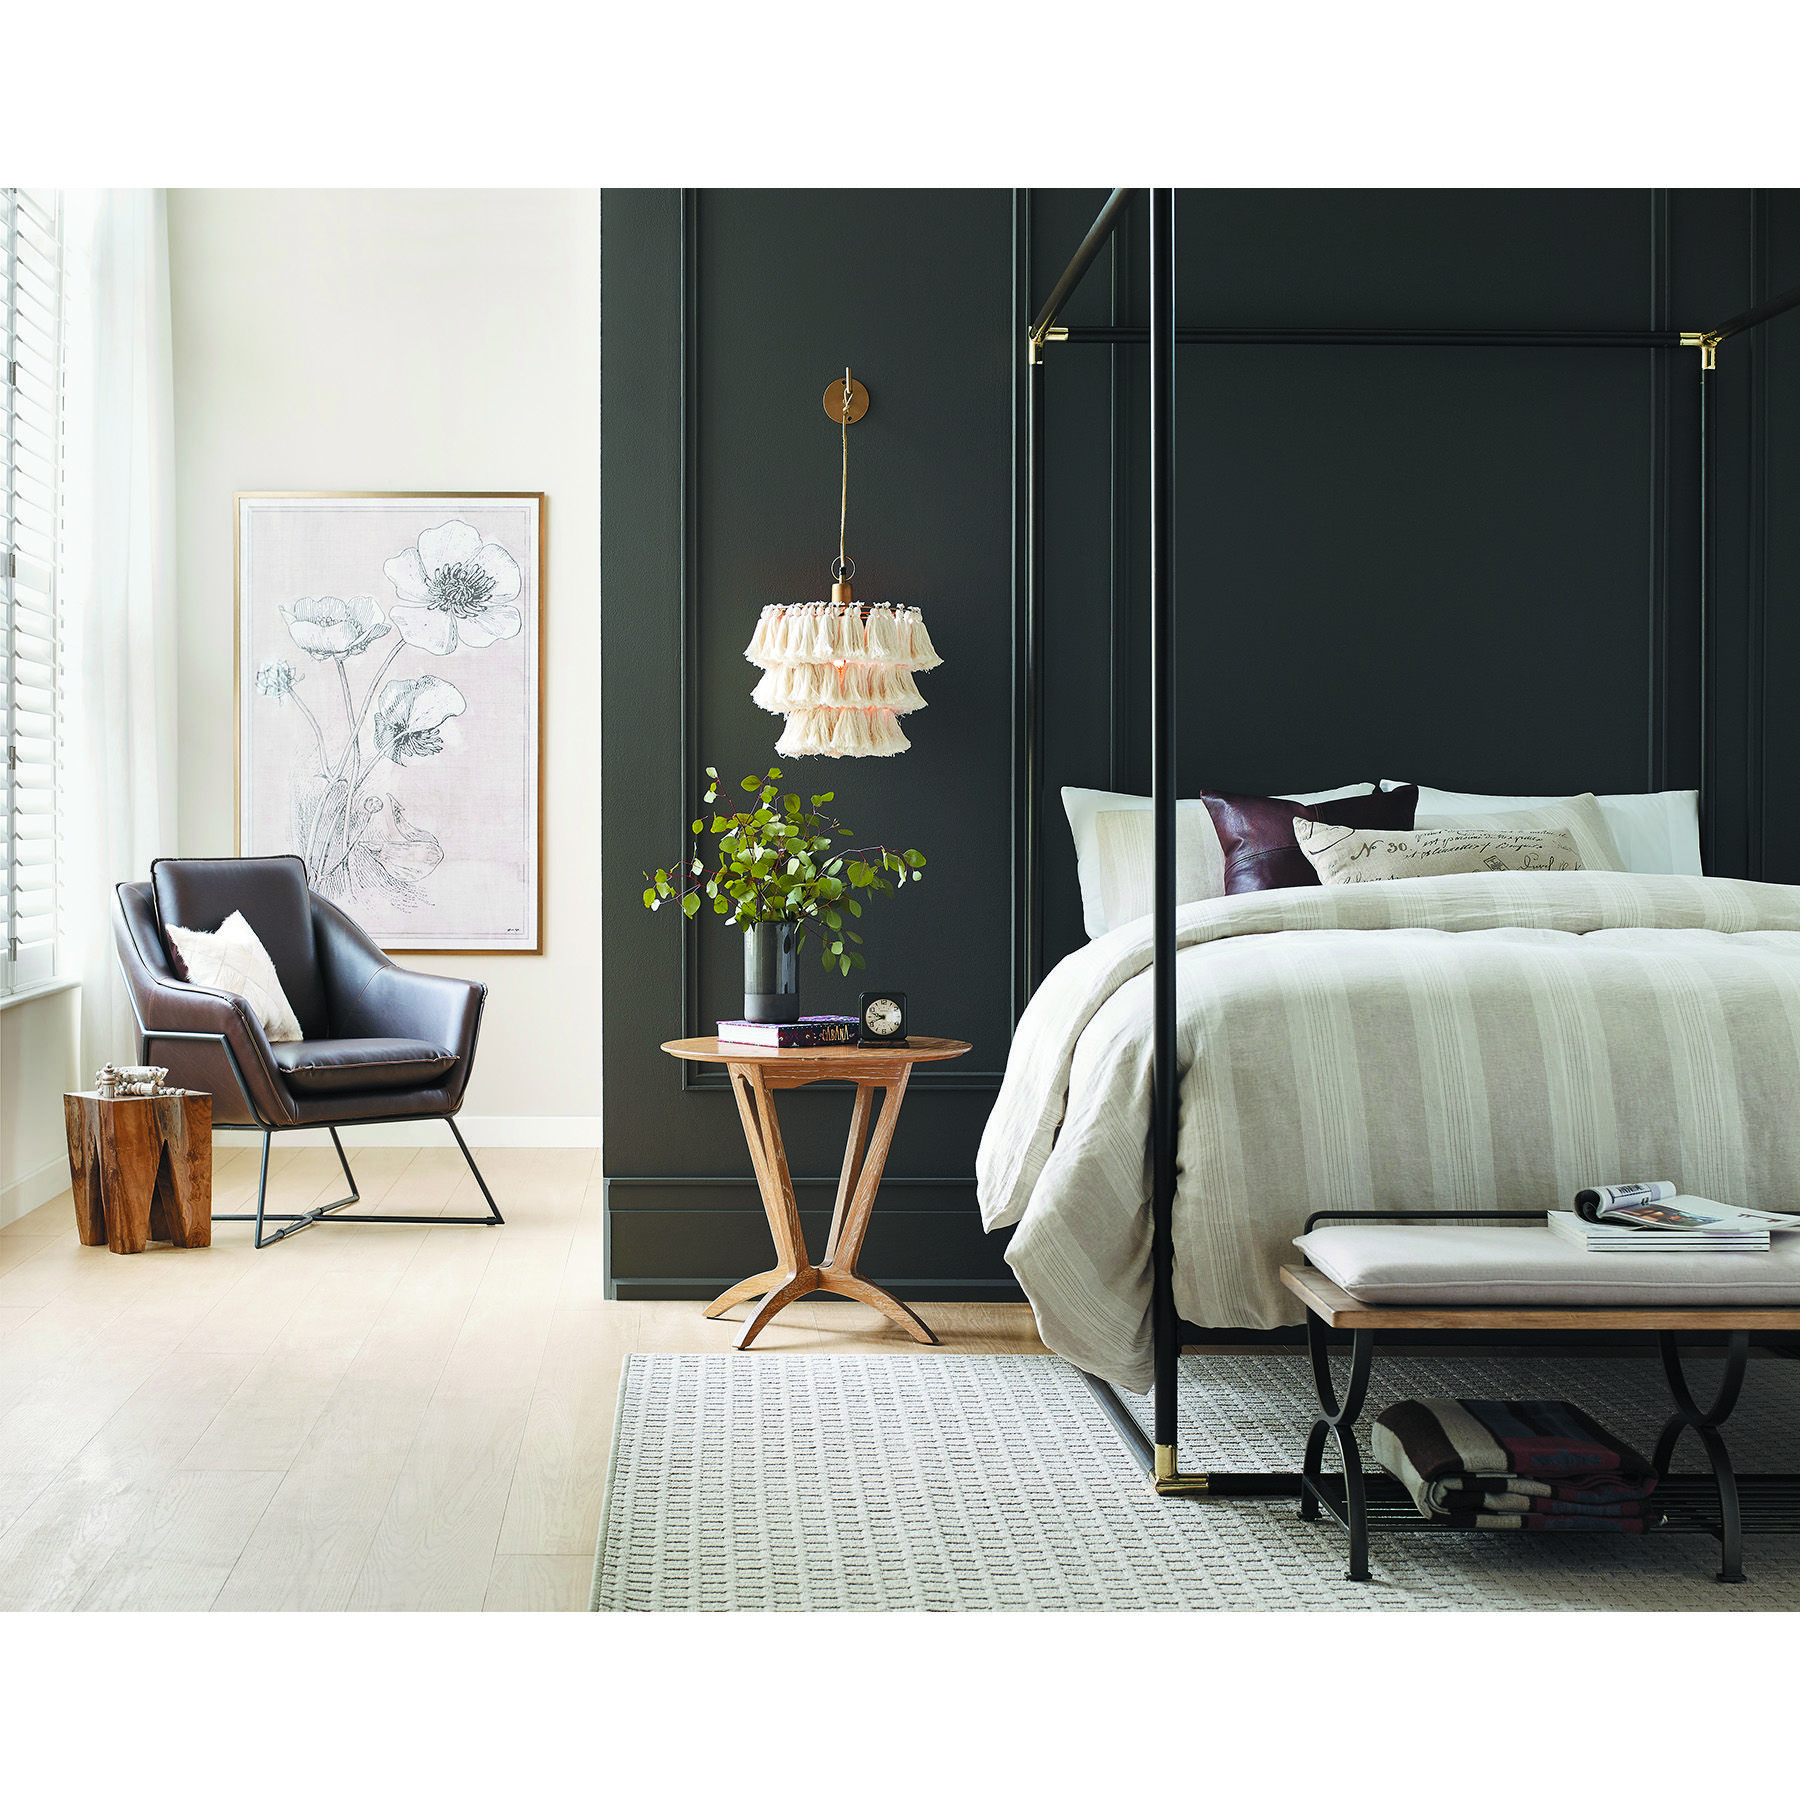 The Best Paint Colors For 2021 2021 Paint Color Trends